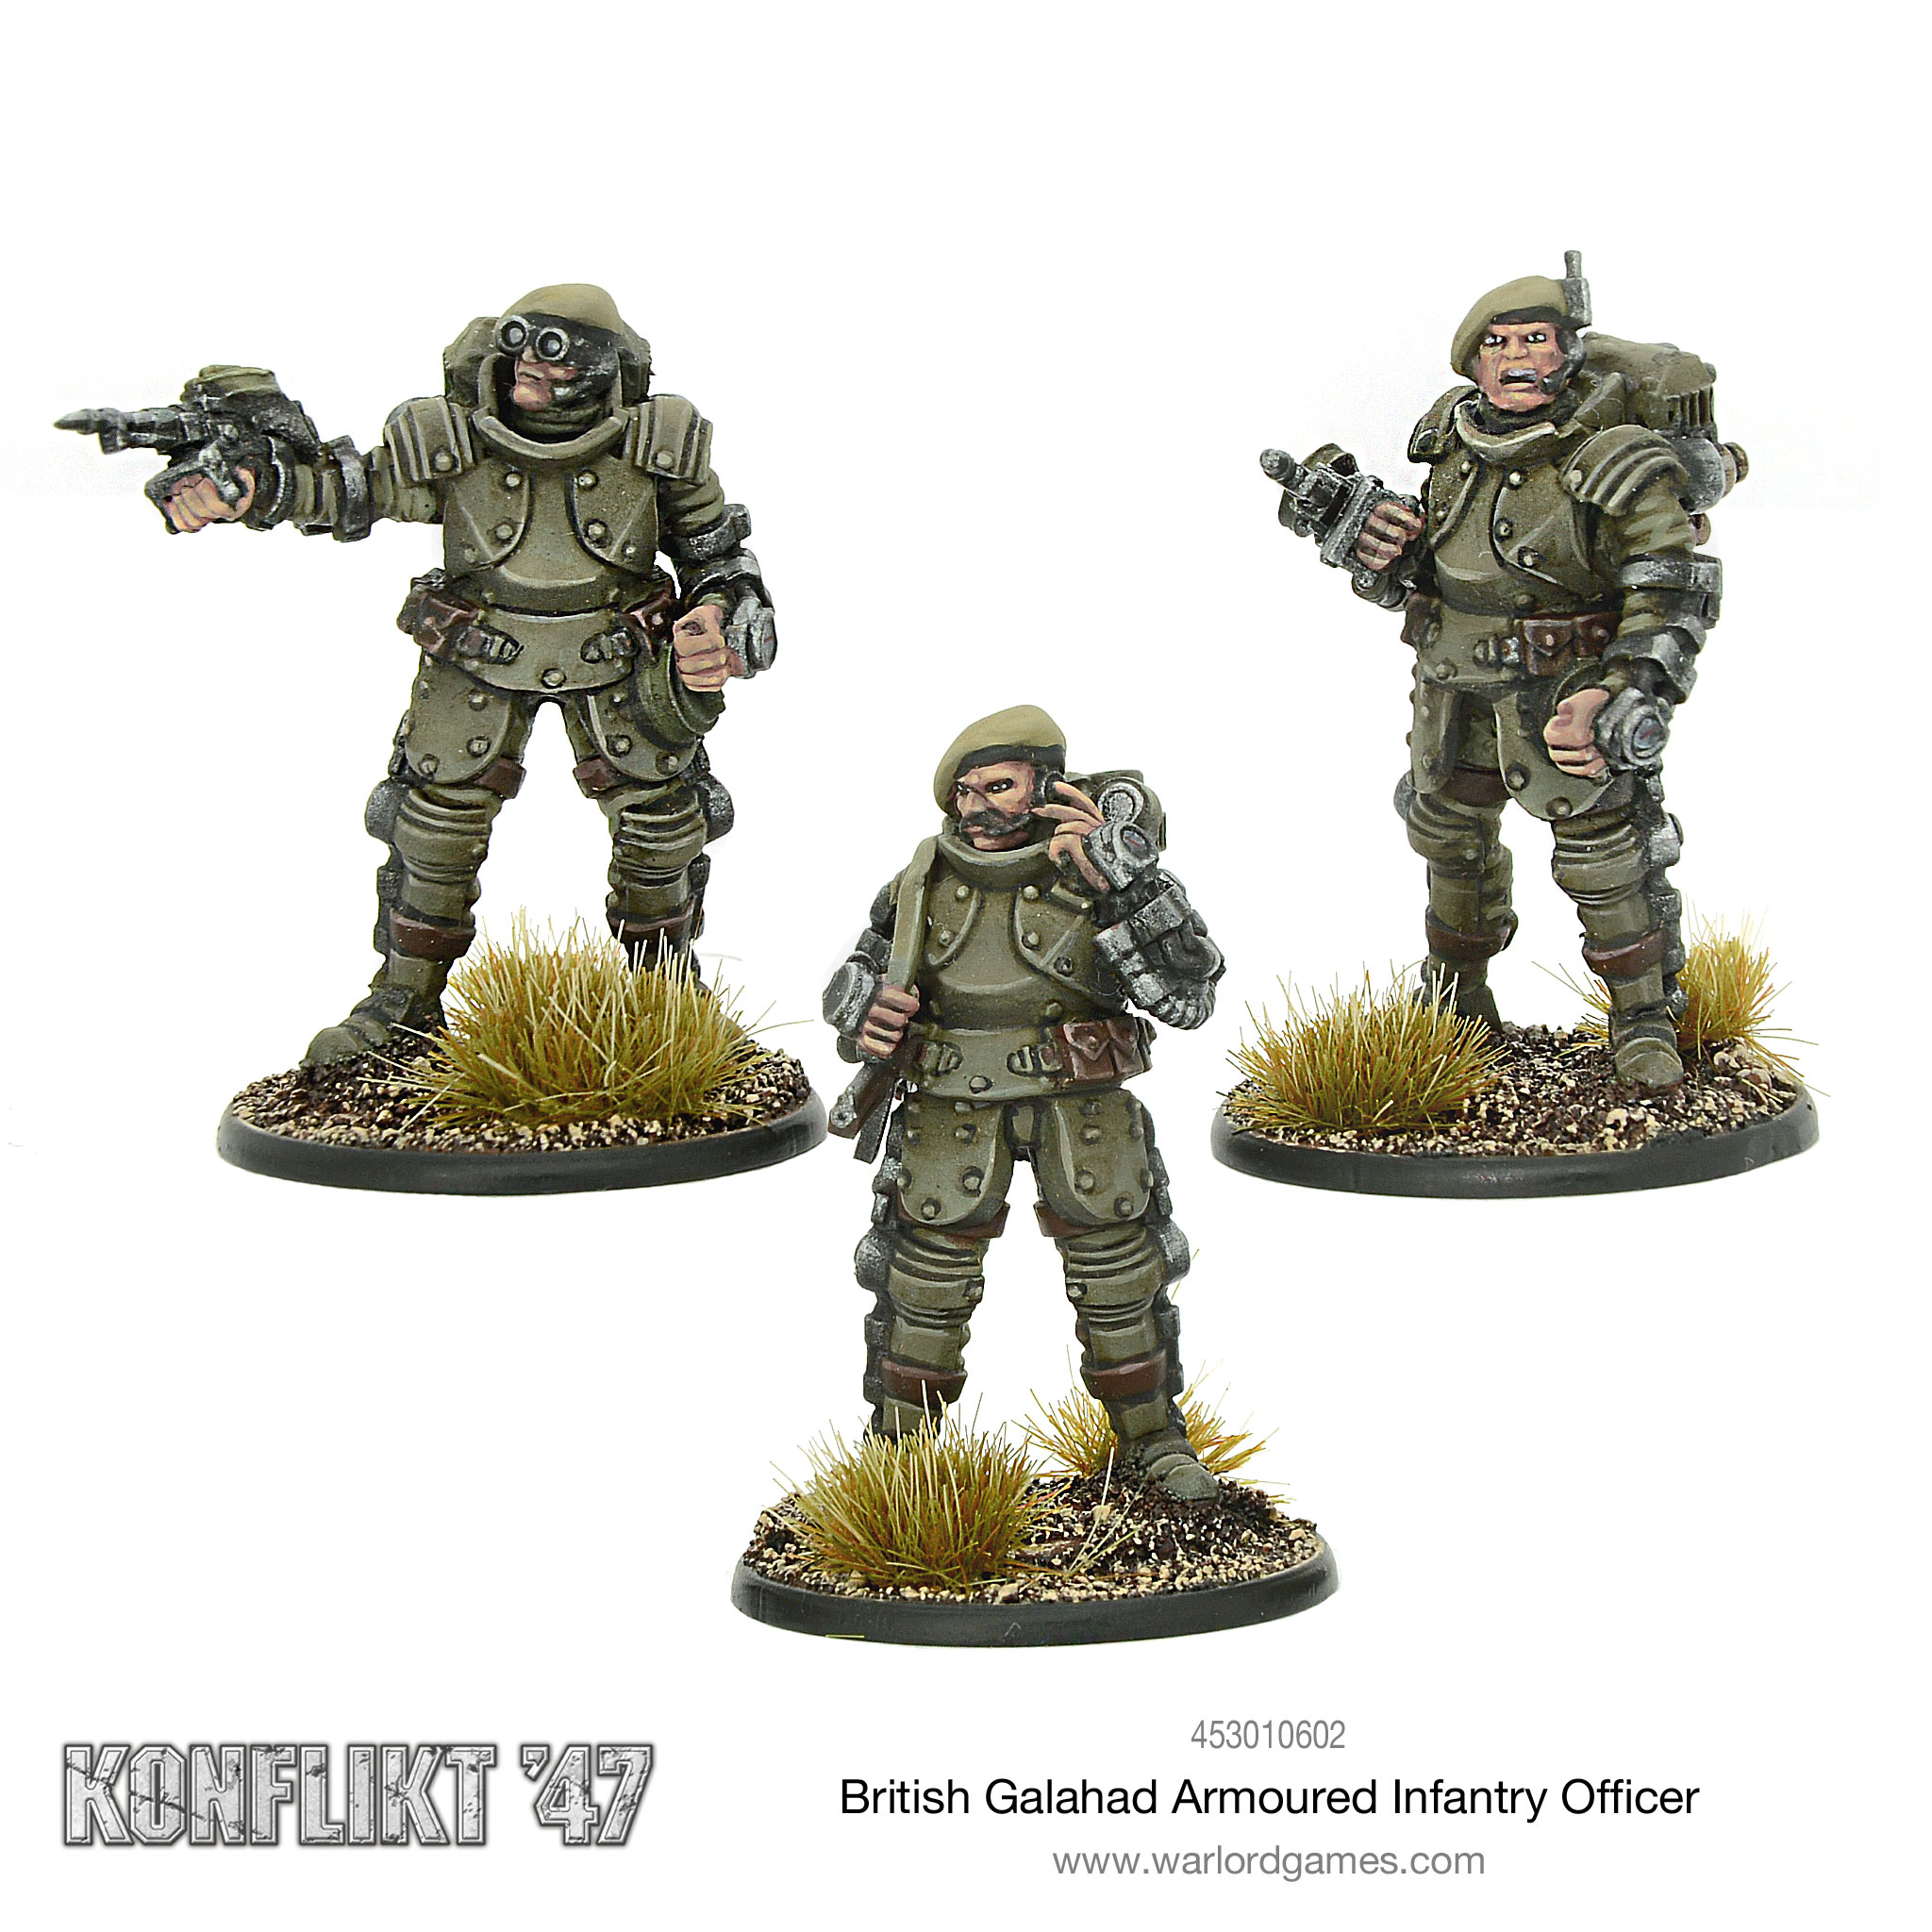 British Galahad Armoured Infantry Officer